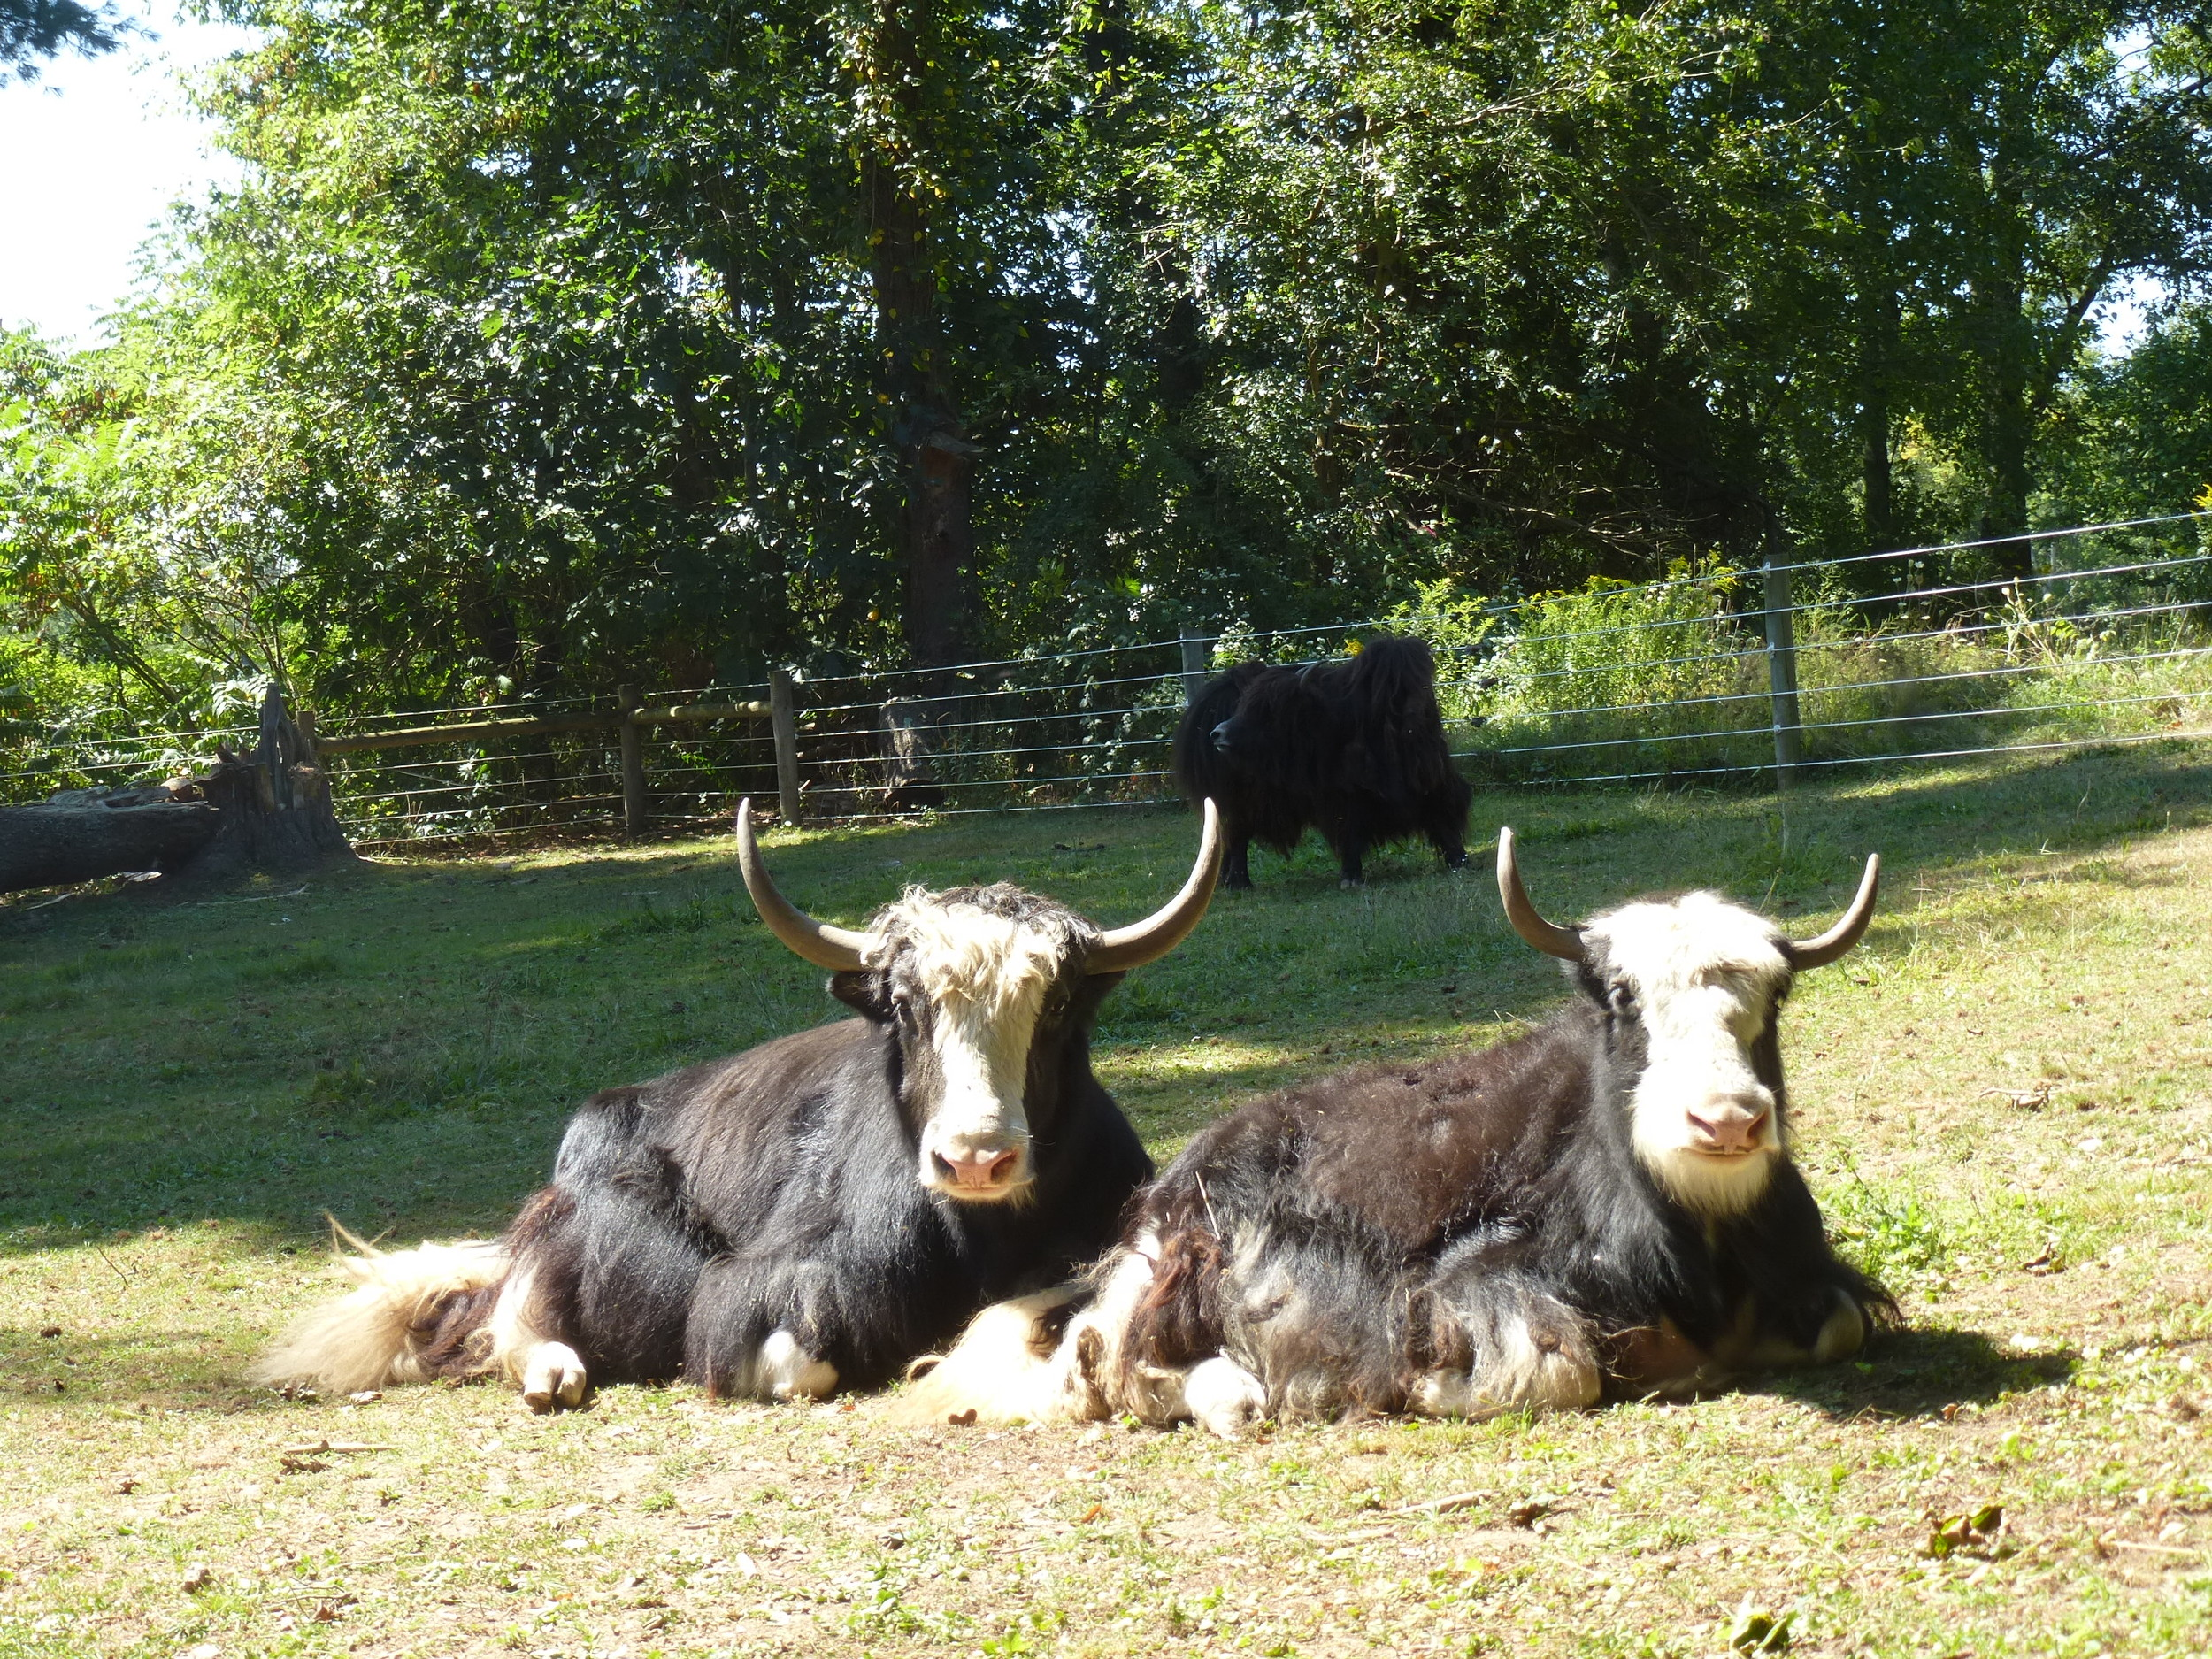 Yaks at   Hidden Pastures Fiber Farm. Apparently one of the yaks is in heat and hasn't left his sweetheart's side for weeks.